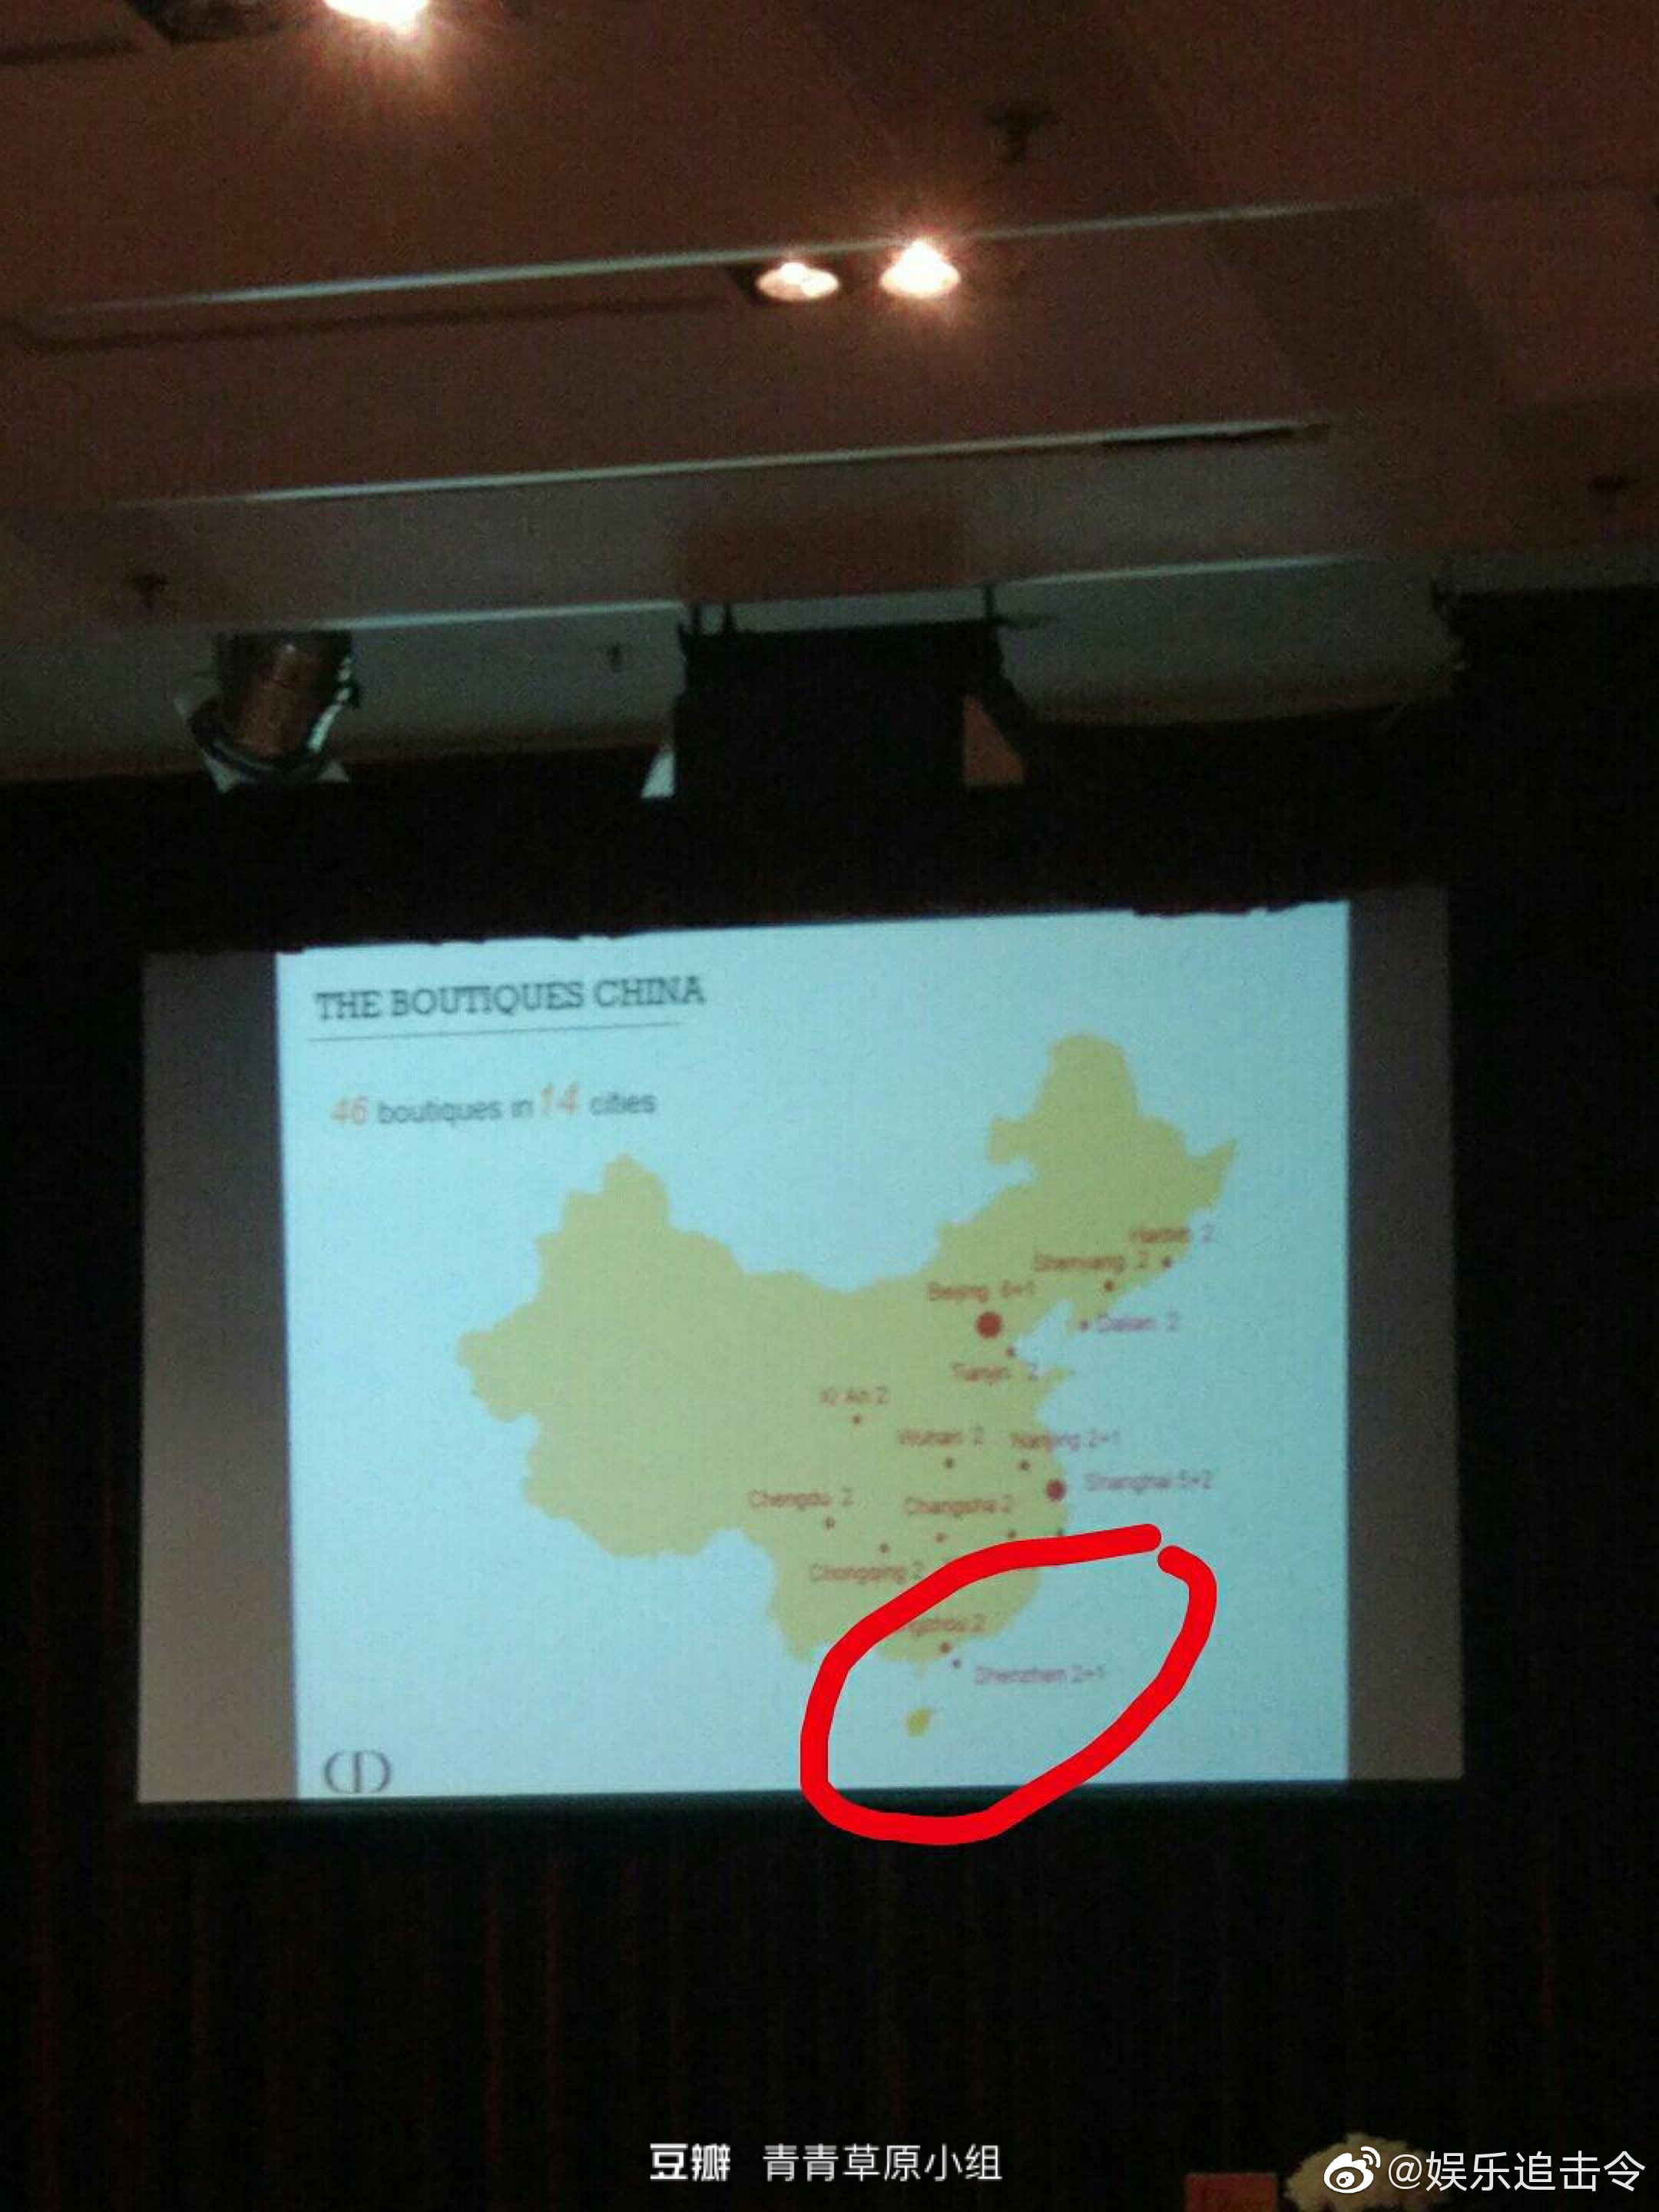 Screen shot of the video, showing a map of China, which exclude the disputed region on China.